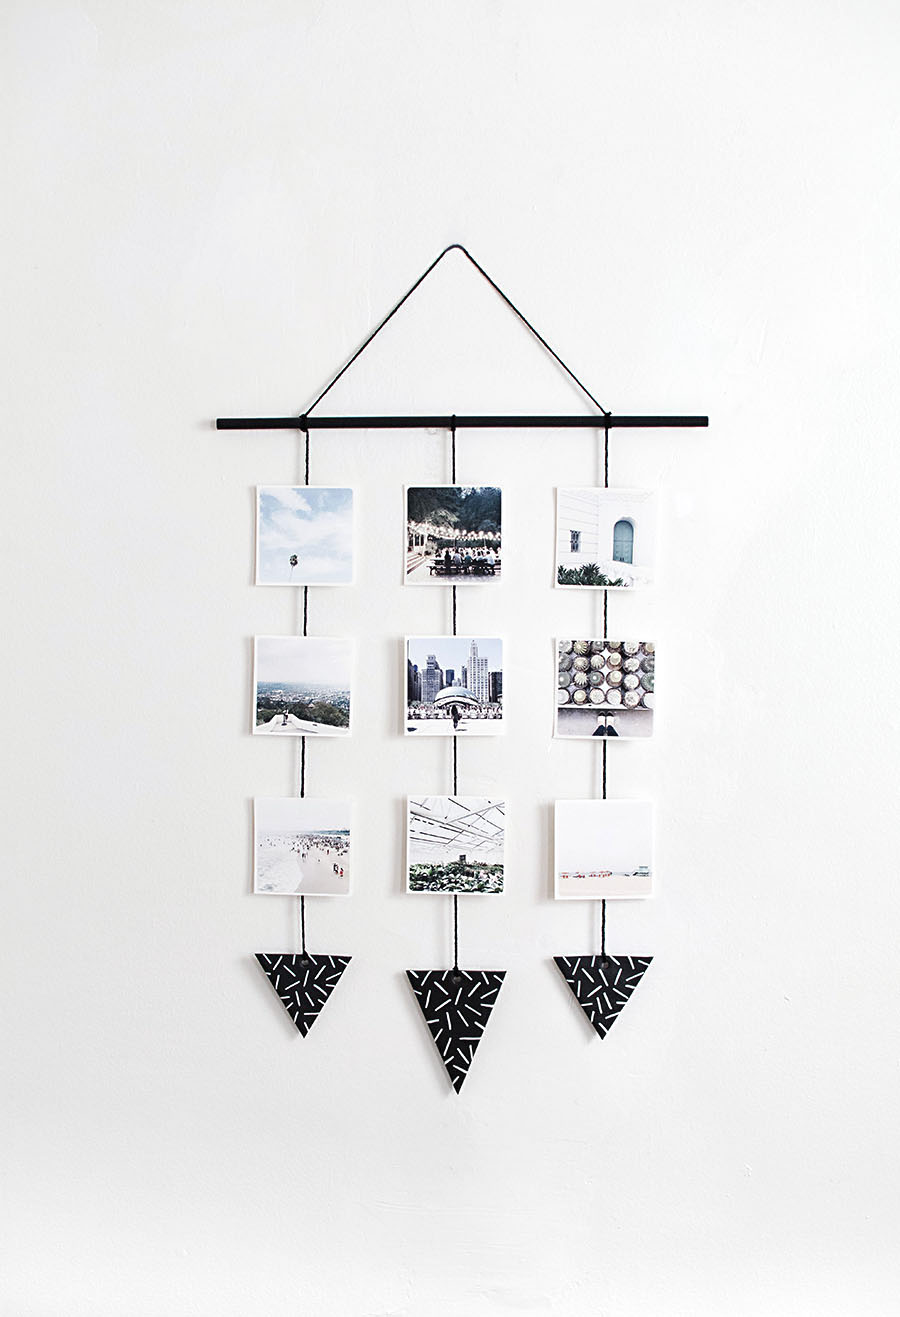 i ve said multiple times how much i love wall hangings and i dig this one for how it serves a function while still being decorative